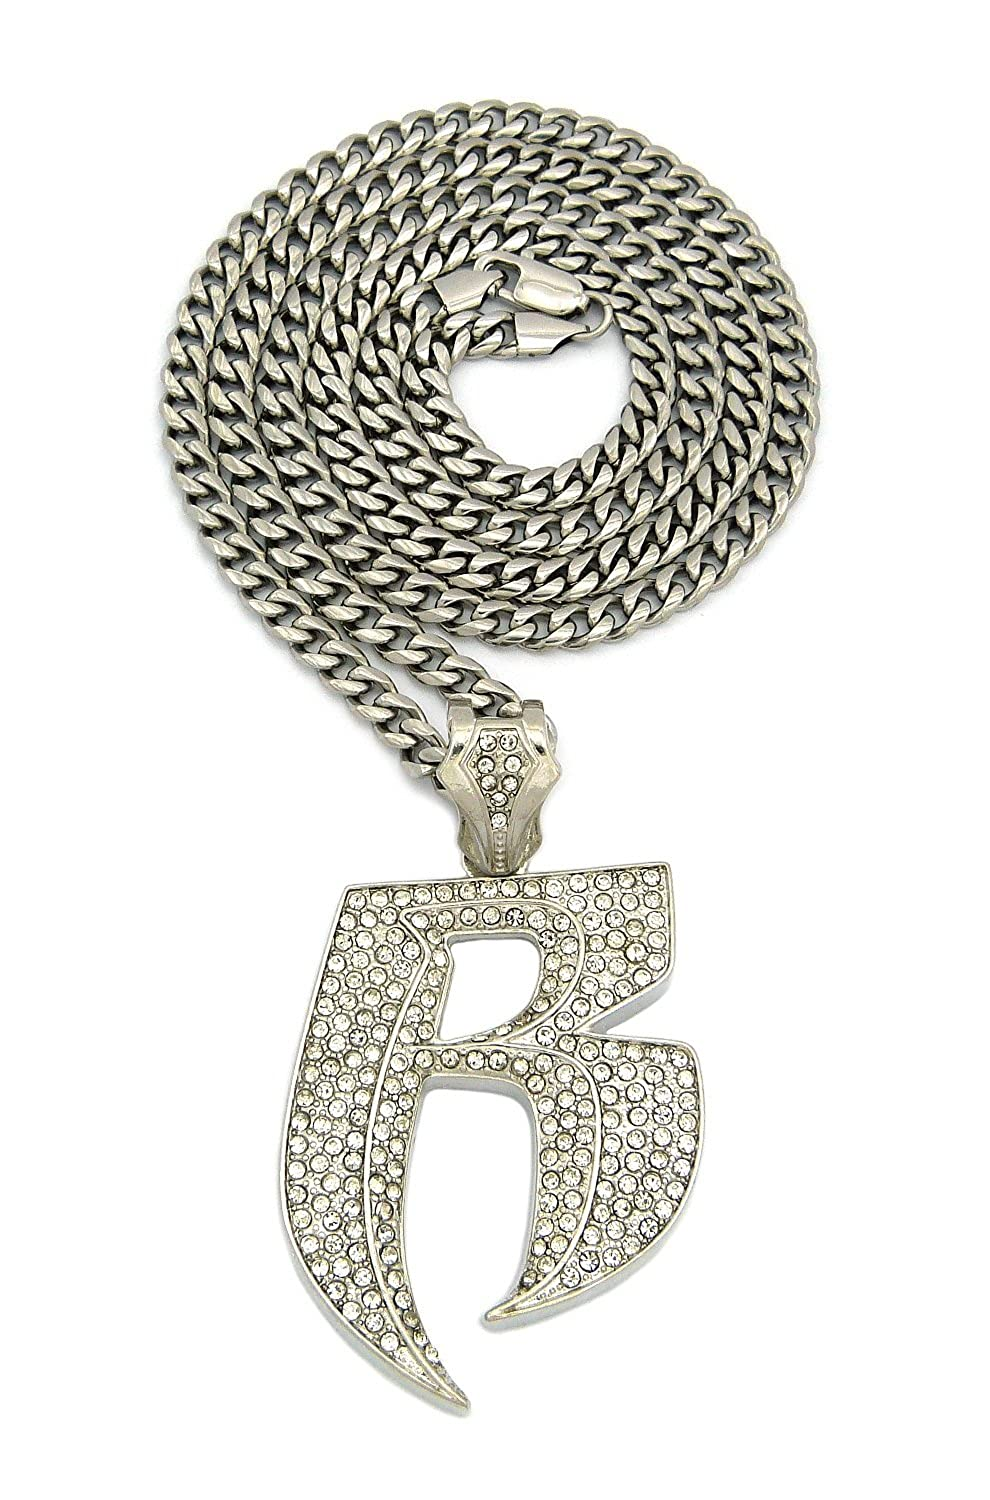 New Iced Out RUFF RYDERS R Pendant /&36 Stainless Steel Chain Necklace RC172SS